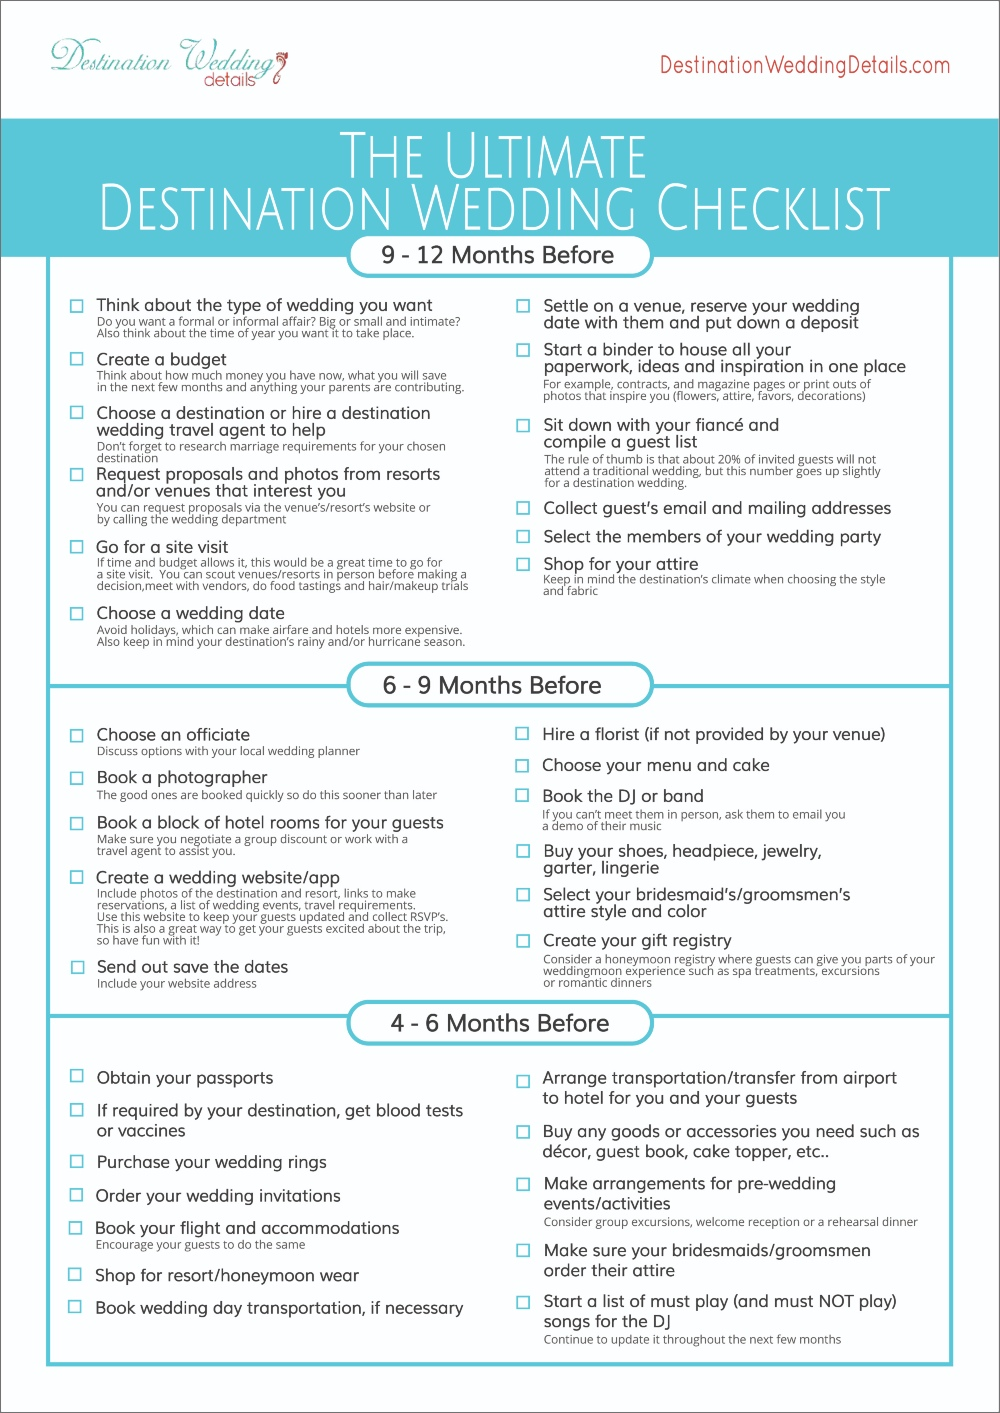 Download the Destination Wedding Checklist